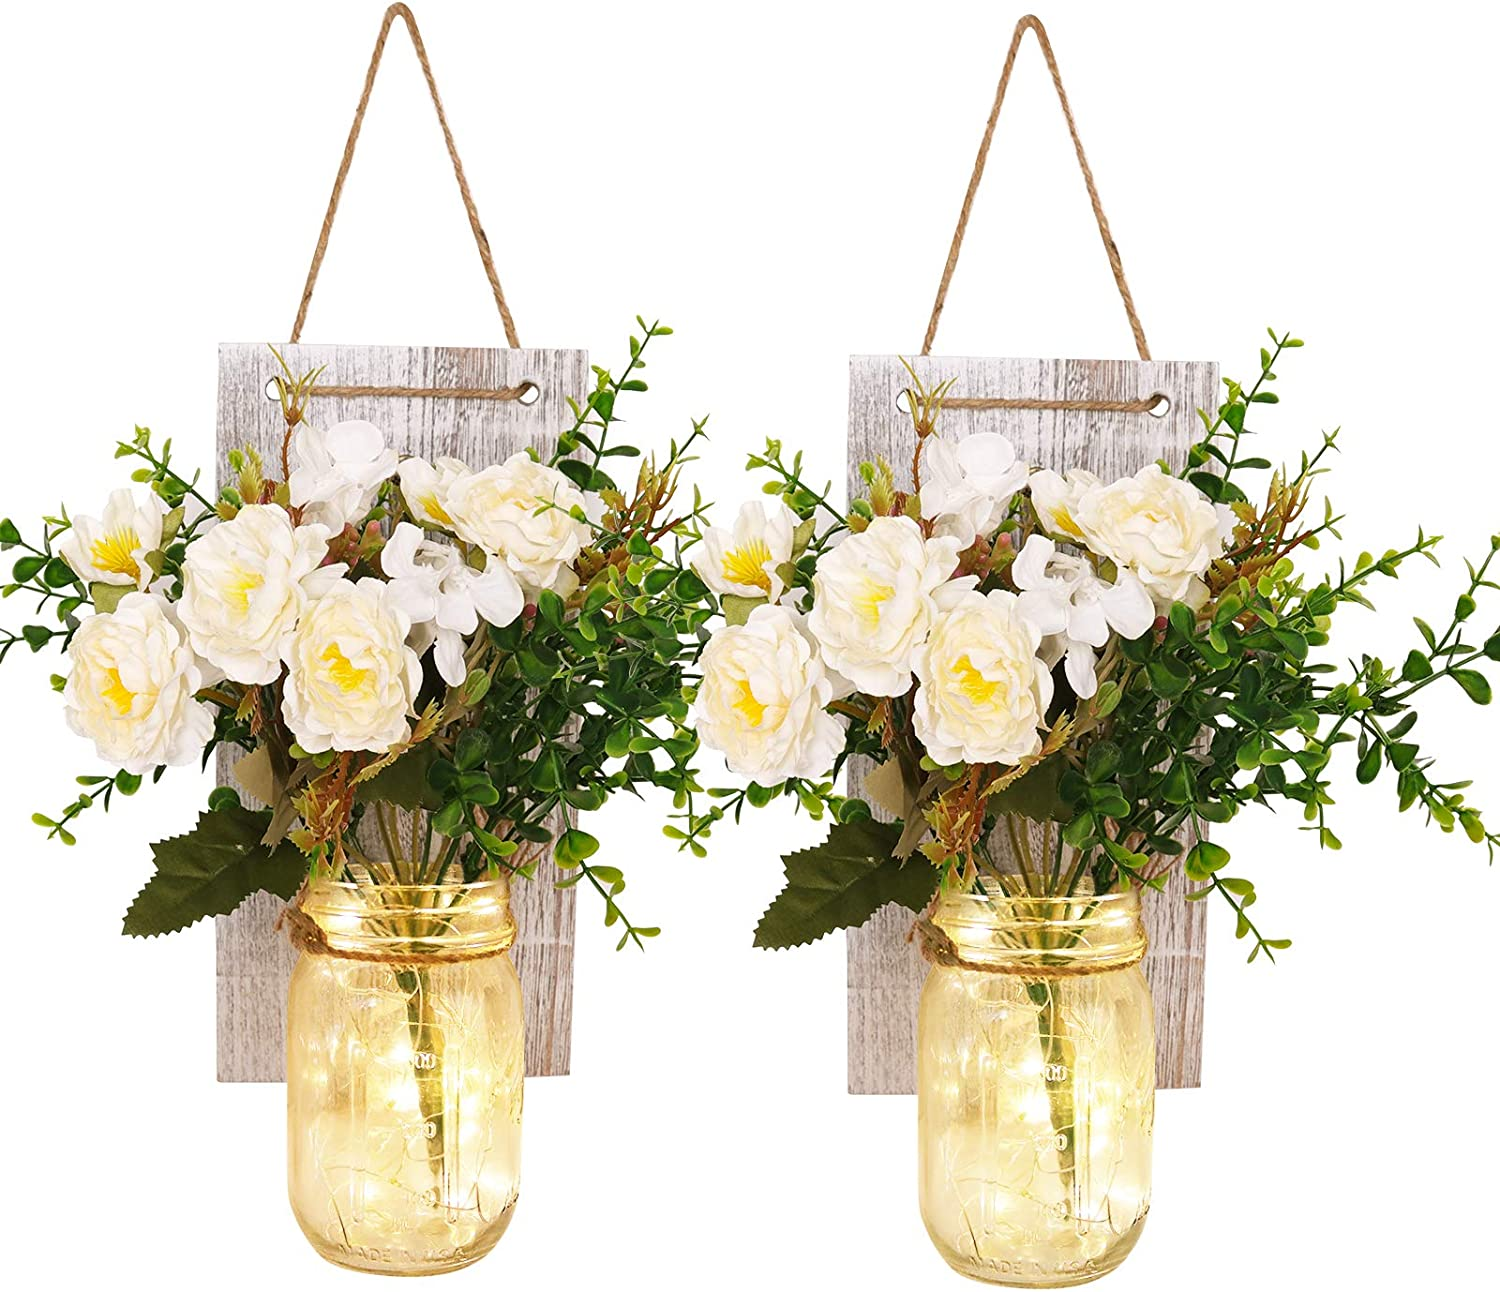 Rustic Mason Jar Sconces Wall Decor Handmade Wall Art Hanging Design with Remote Control LED Fairy Lights and White Peony For Home, Living Room, Bedroom, Kitchen, Farmhouse Wall Decoration (Set of 2)